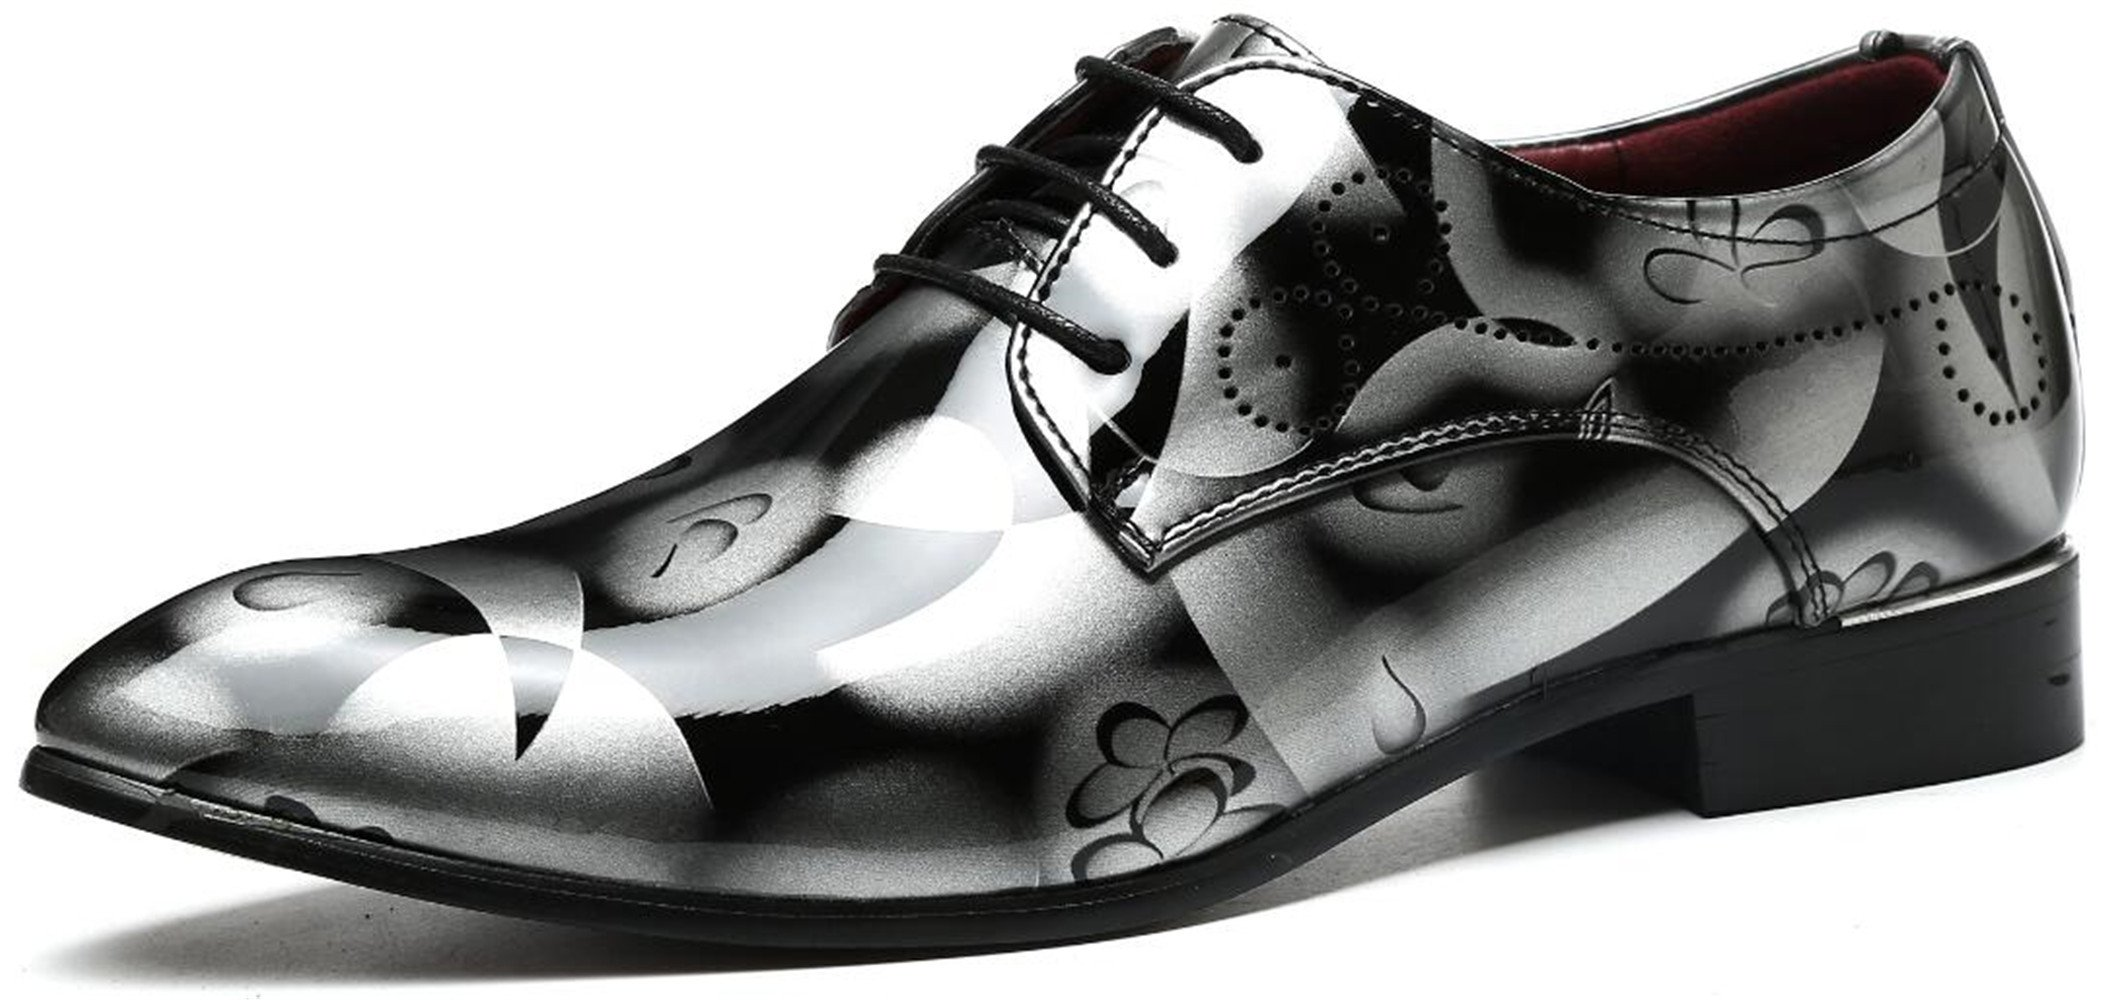 Men's Fashion Shiny Patent-Leather Shoes Tuxedo Wingtip Lace-up Oxford Shoes (8.5, Grey)